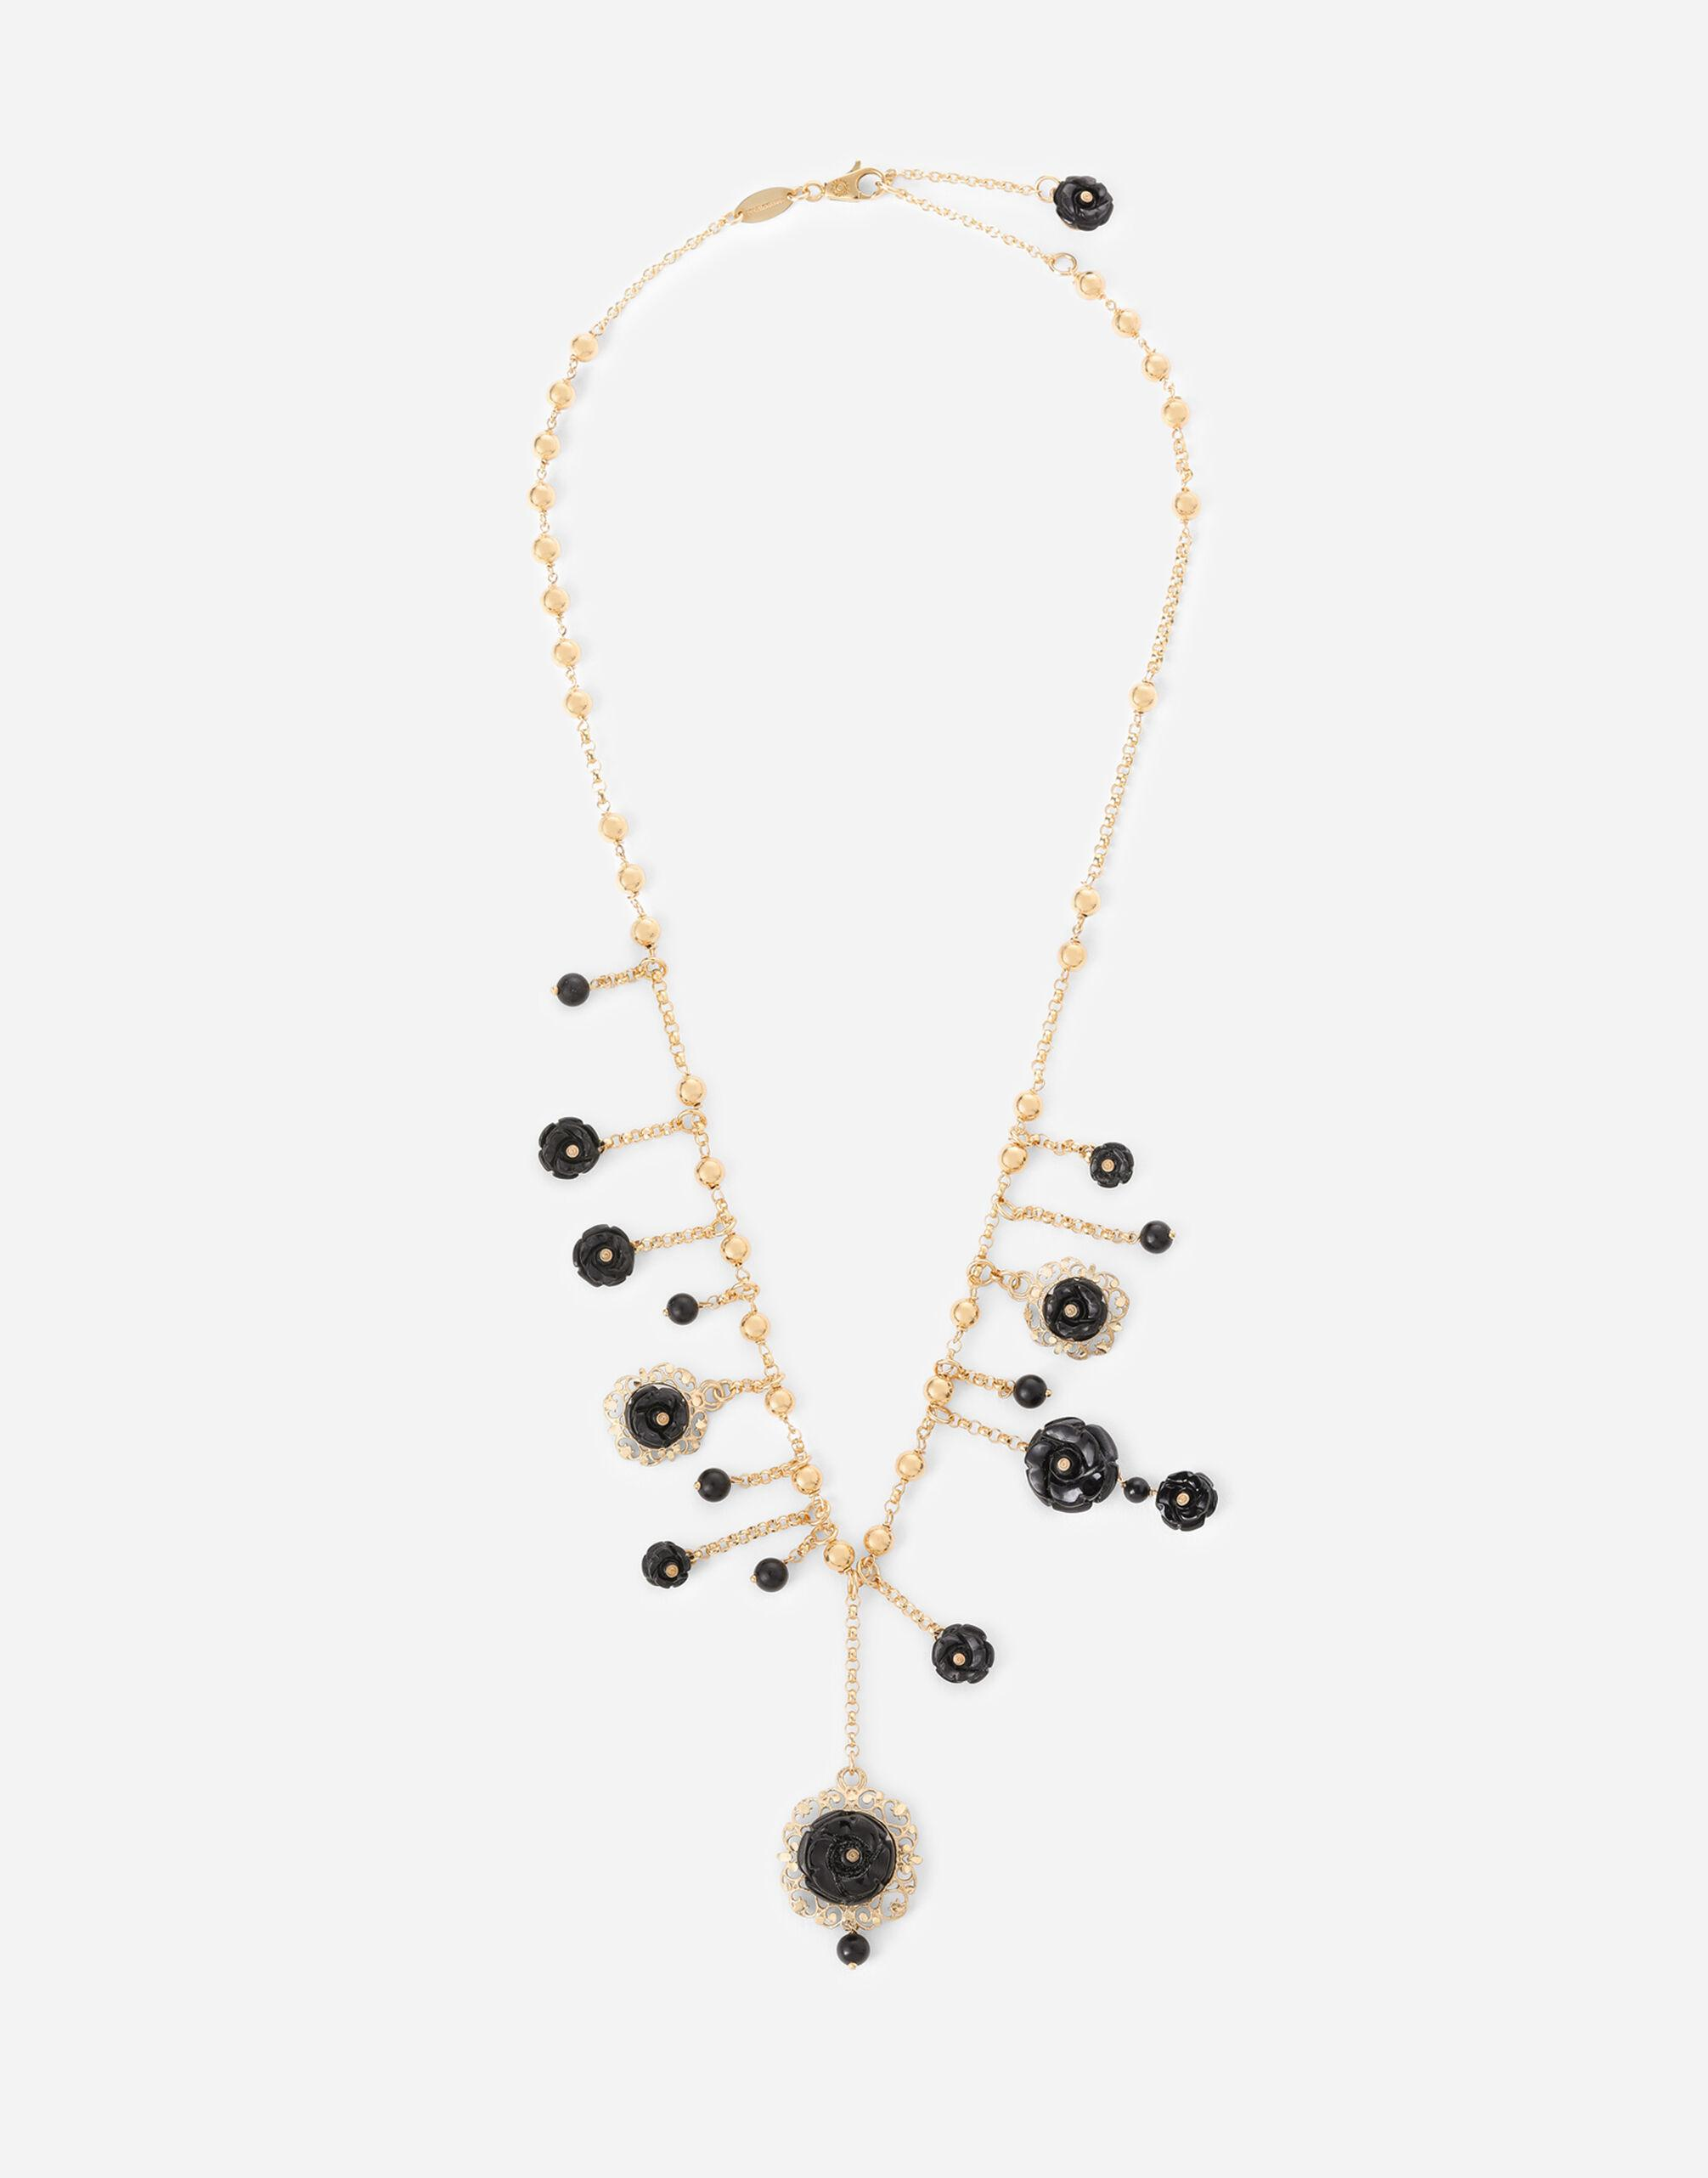 Rose necklace in yellow 18kt gold with black jade roses